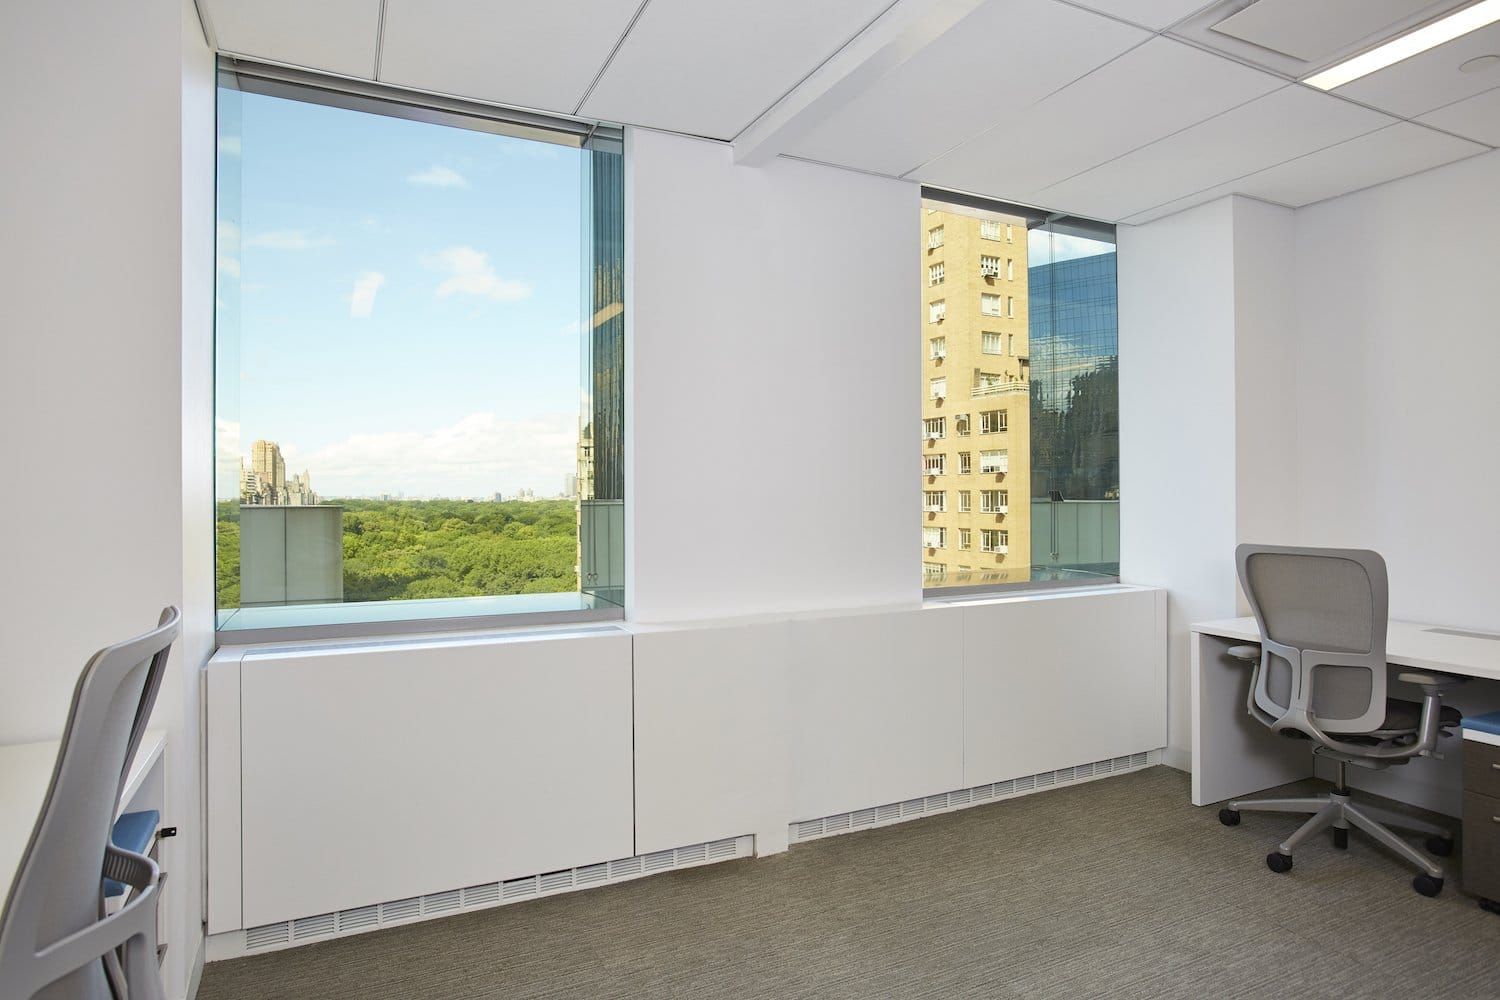 Shared office space with windows